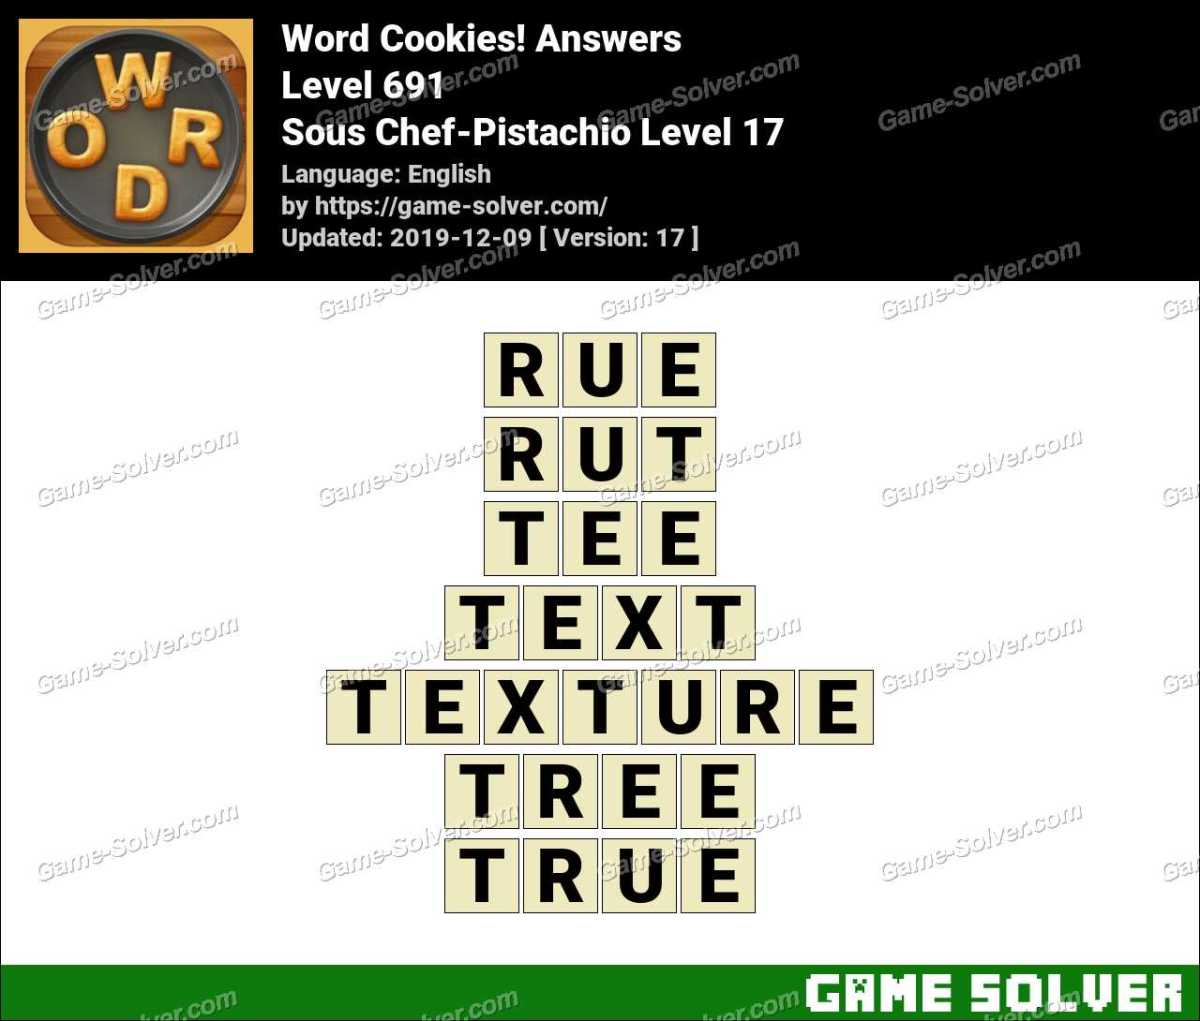 Word Cookies Sous Chef-Pistachio Level 17 Answers